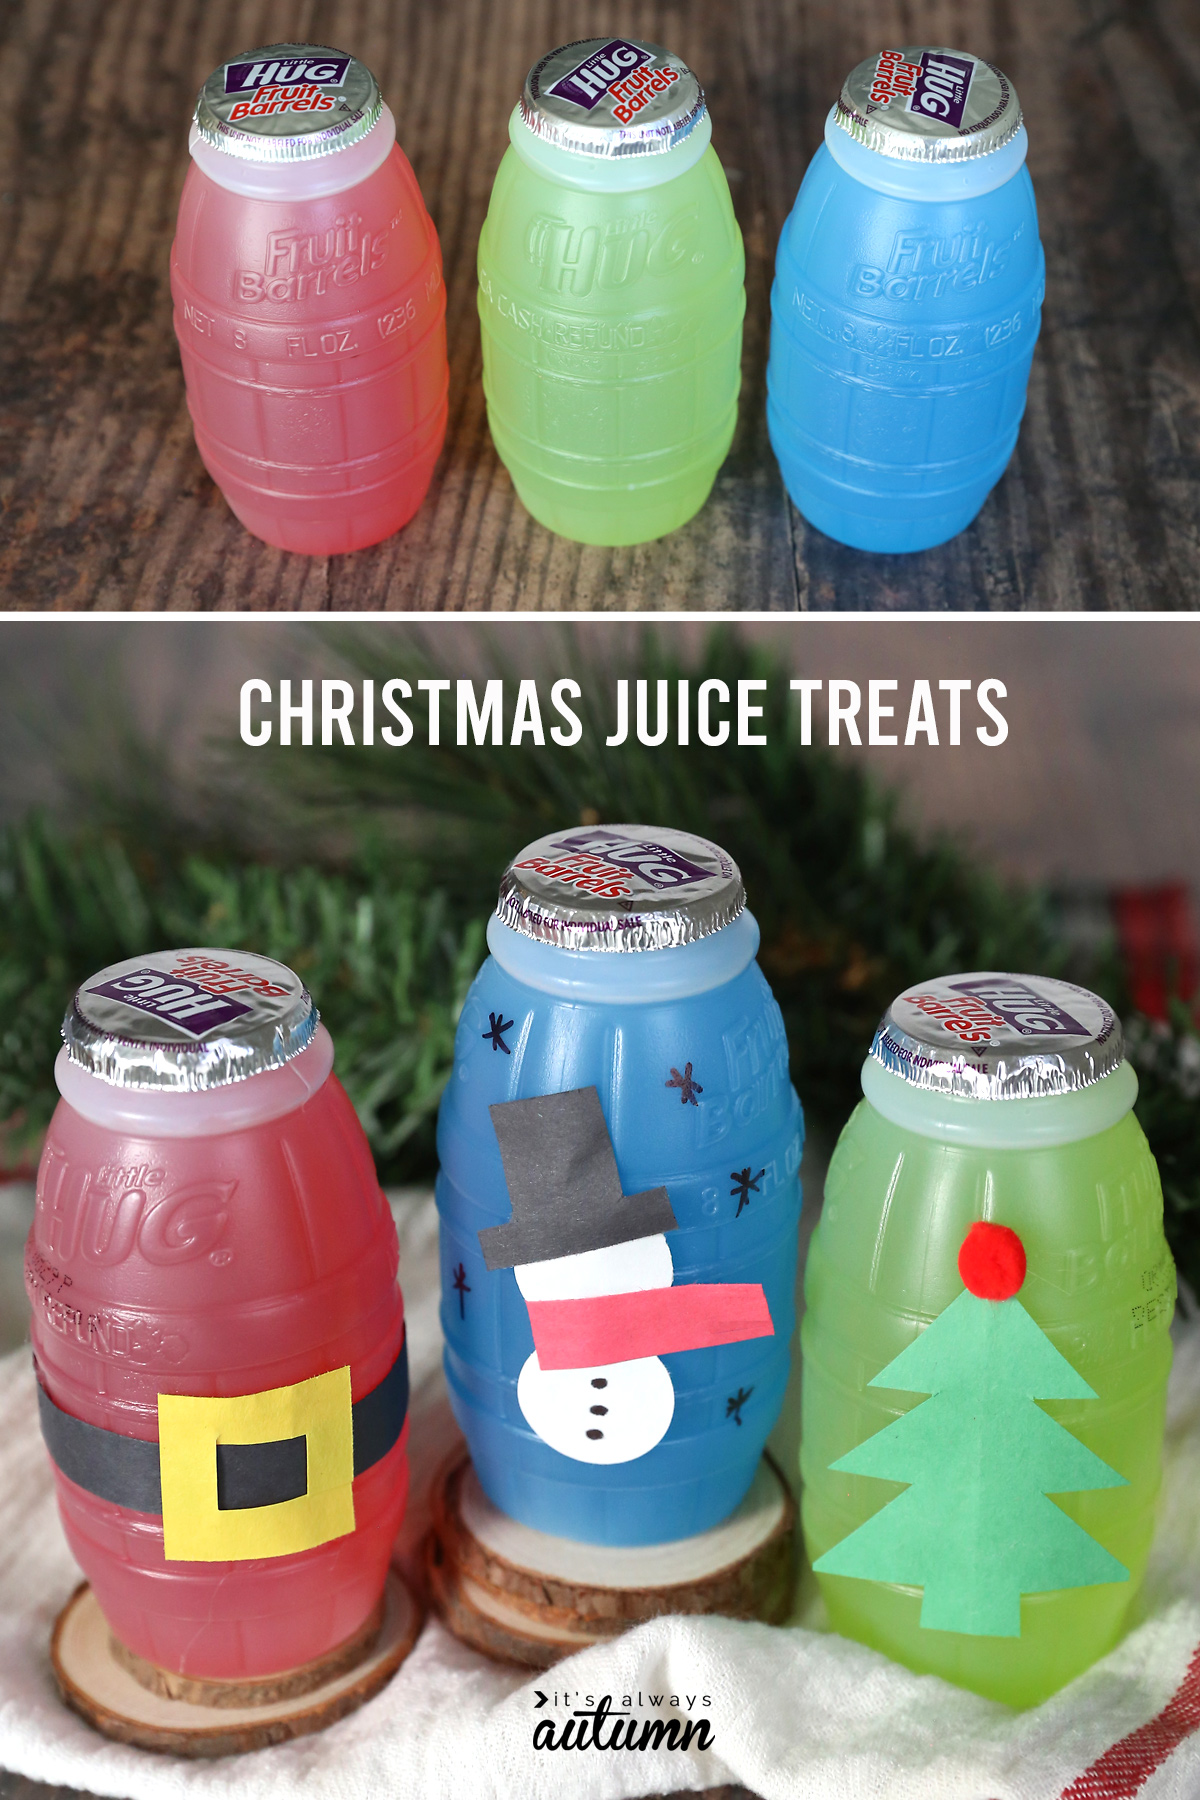 Red, green and blue juice treat jugs decorated with construction paper for Christmas